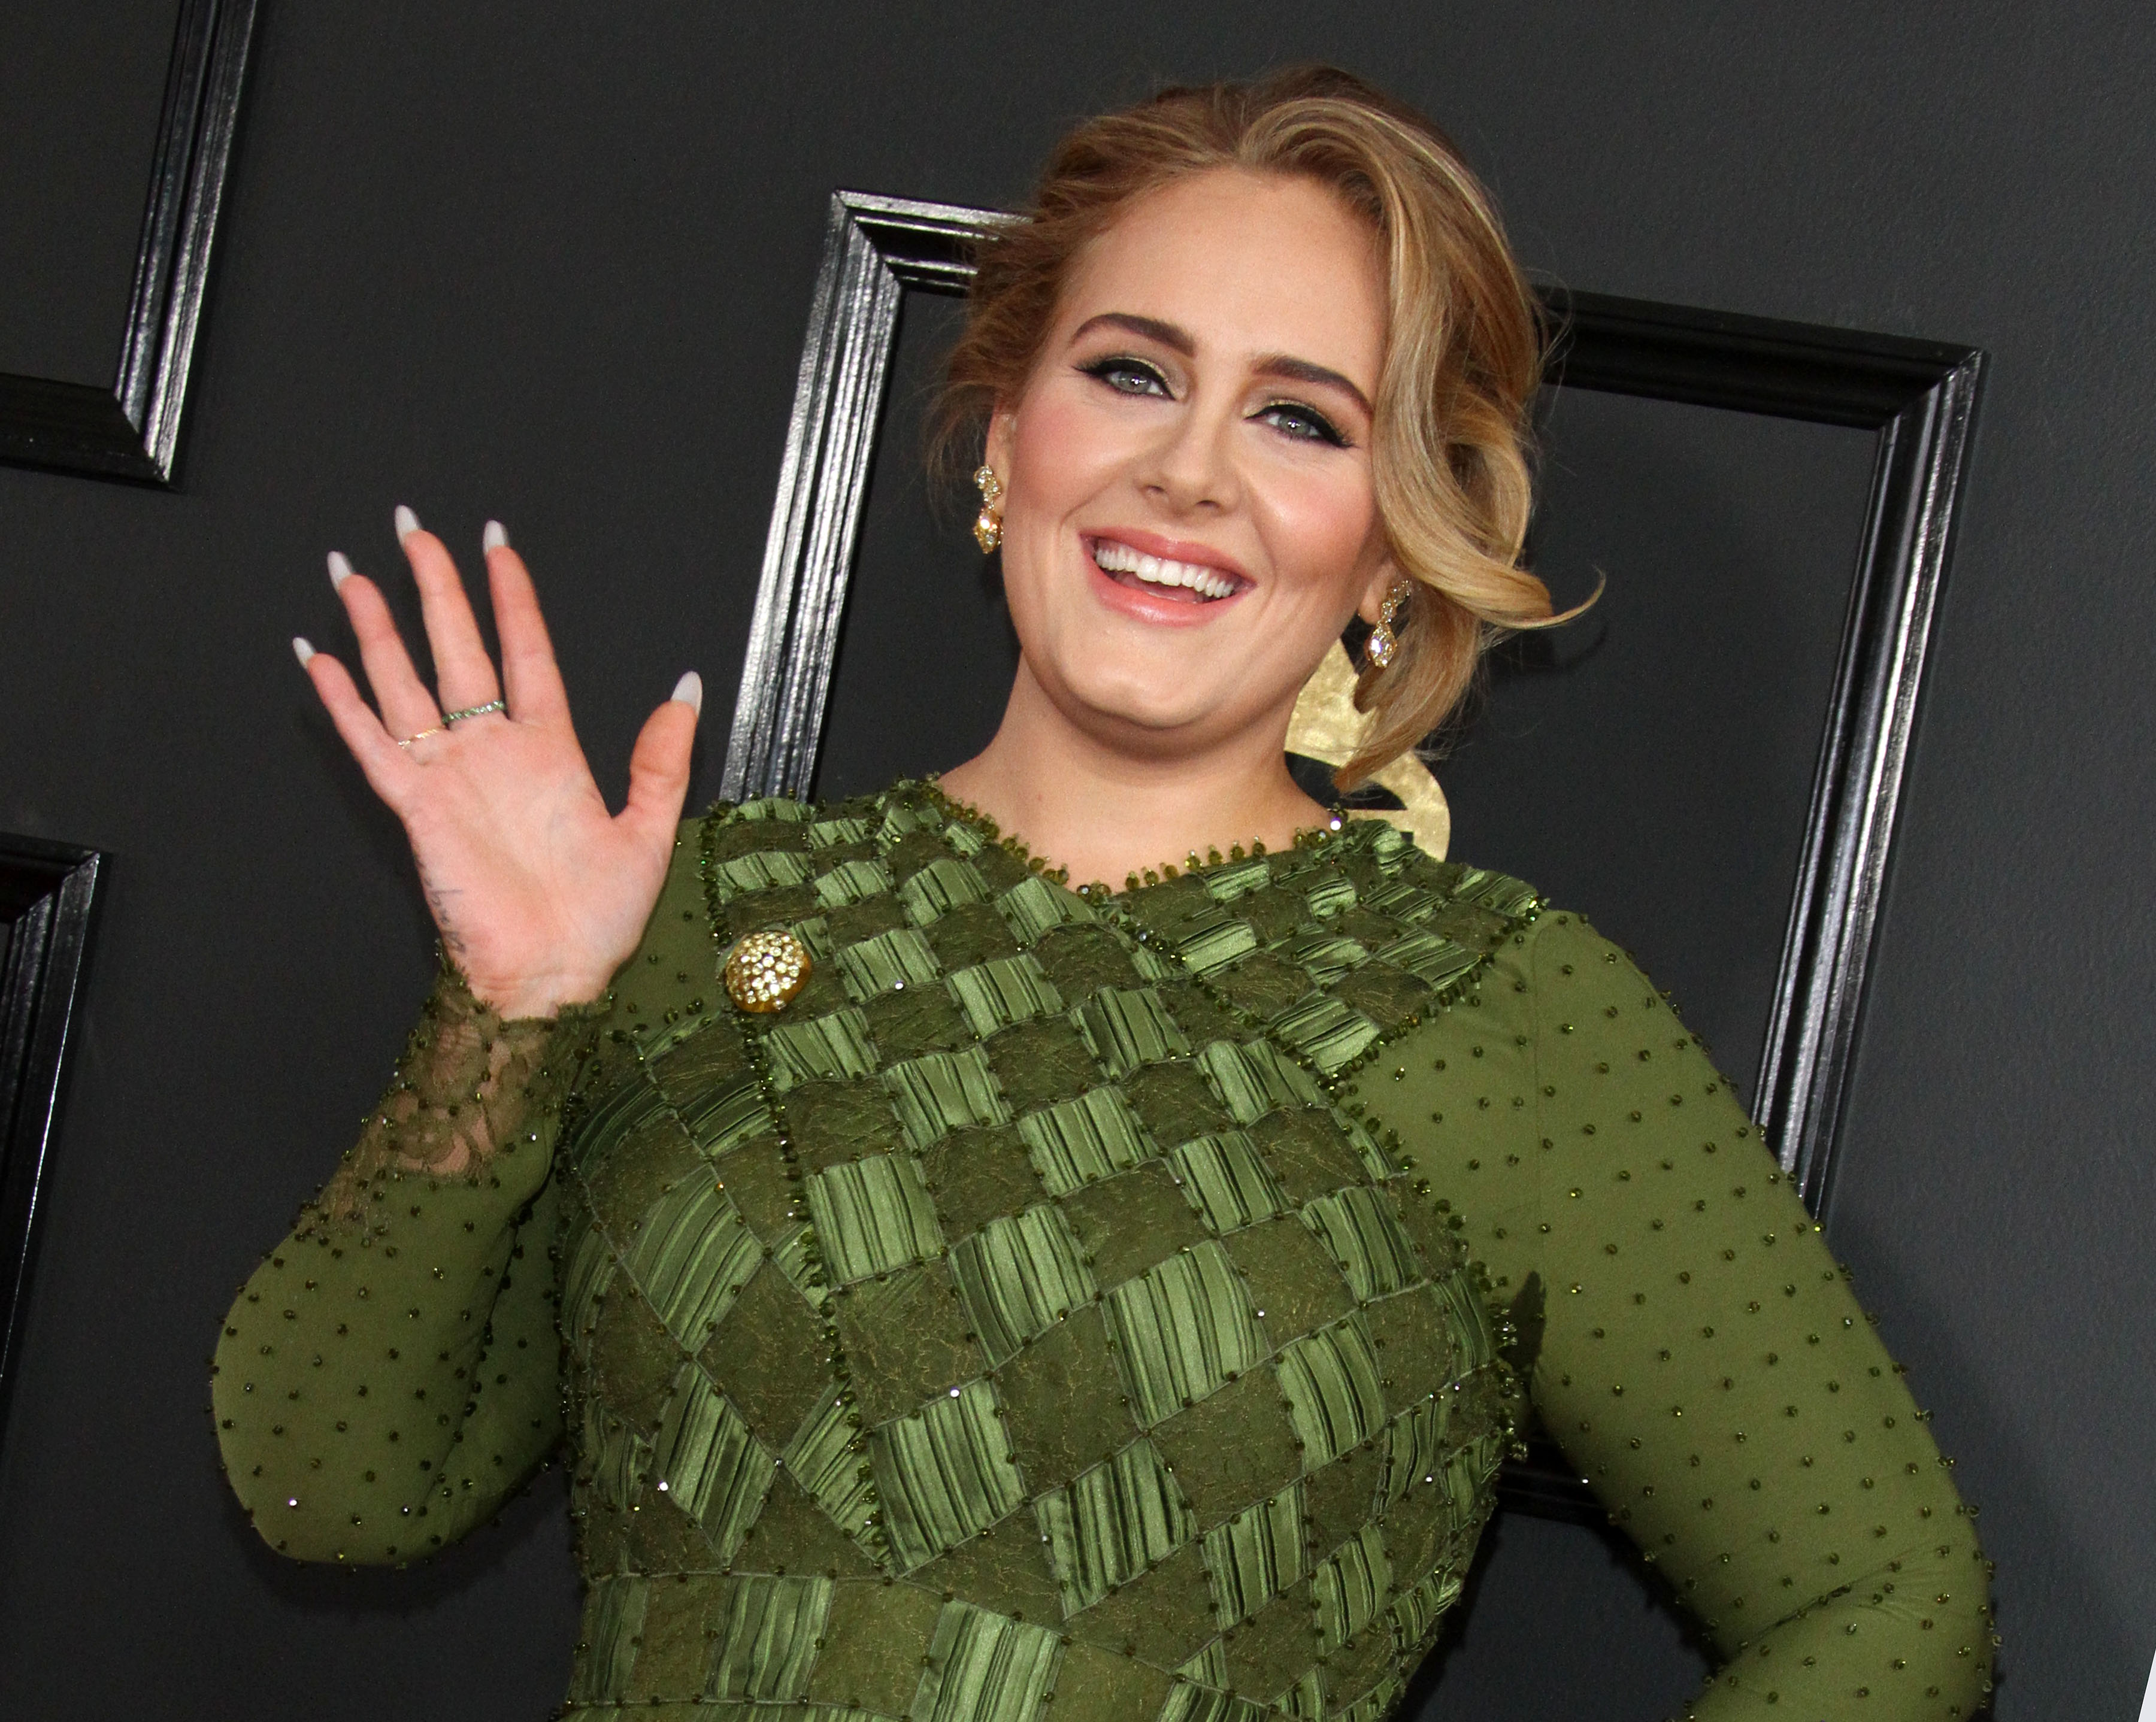 Adele's red-carpet appearances are rare and unexpected, but nonetheless stunning. Click through to see her top 10 style moment. (Photo: WENN)